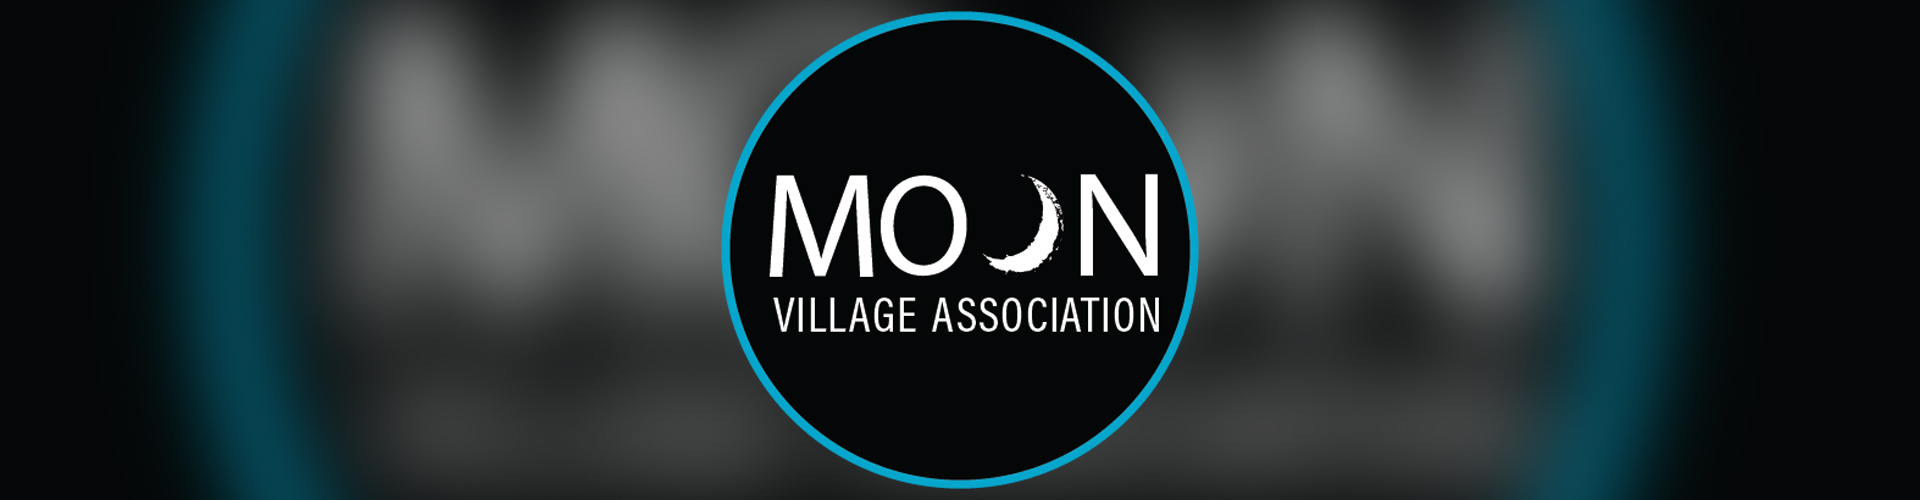 Moon Village Association Newsletter, August – December 2020